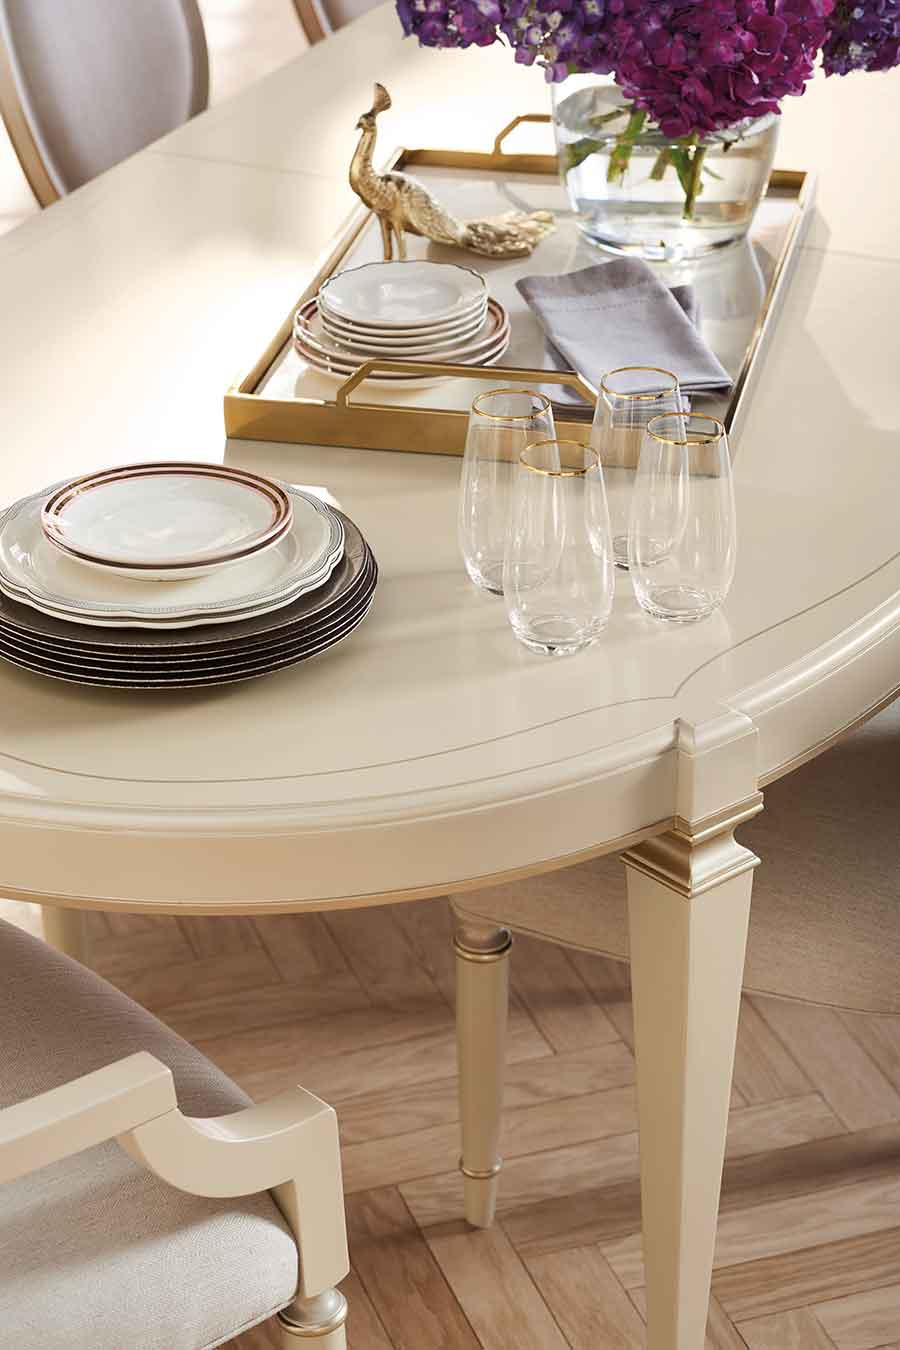 Dining Tables | Contemporary Luxury Designer Modern Exclusive Handcrafted Furniture | Sandton Johannesburg